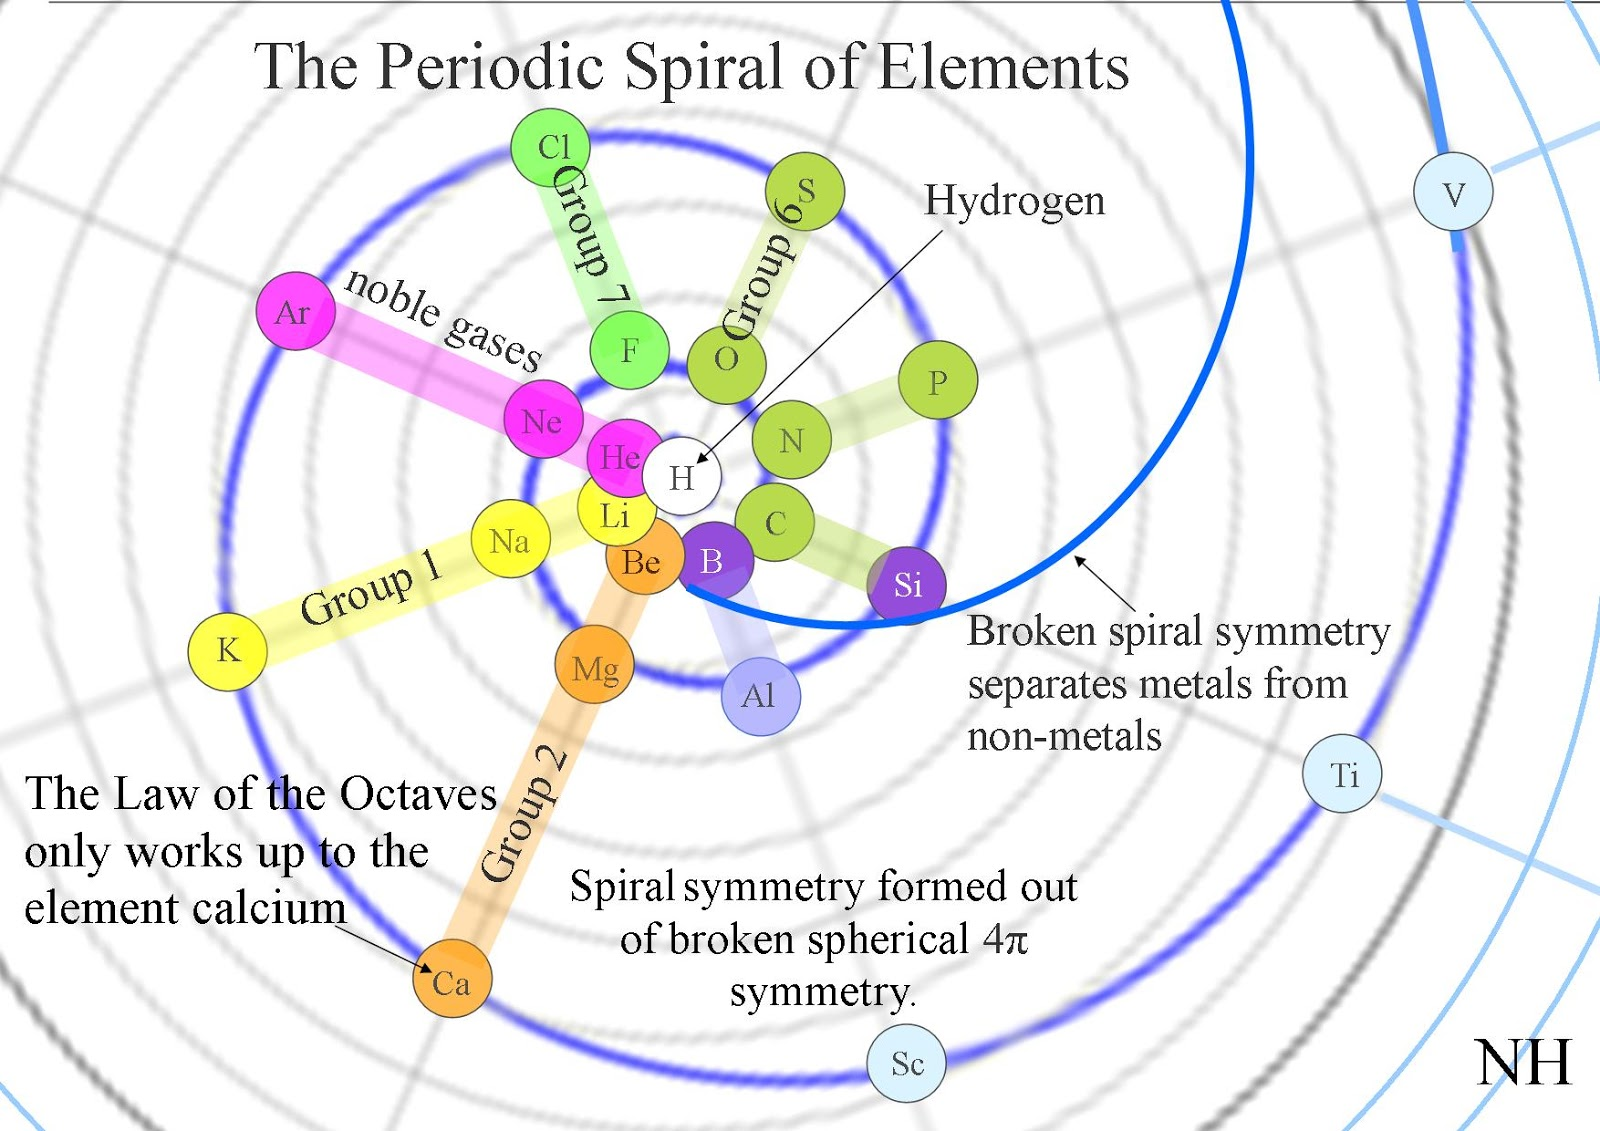 Quantum art and poetry a spiral periodic table with the elements with hydrogen at the centre a spiral periodic table with the noble gases and the different groups of elements radiating out like spokes from the centre of a gamestrikefo Image collections